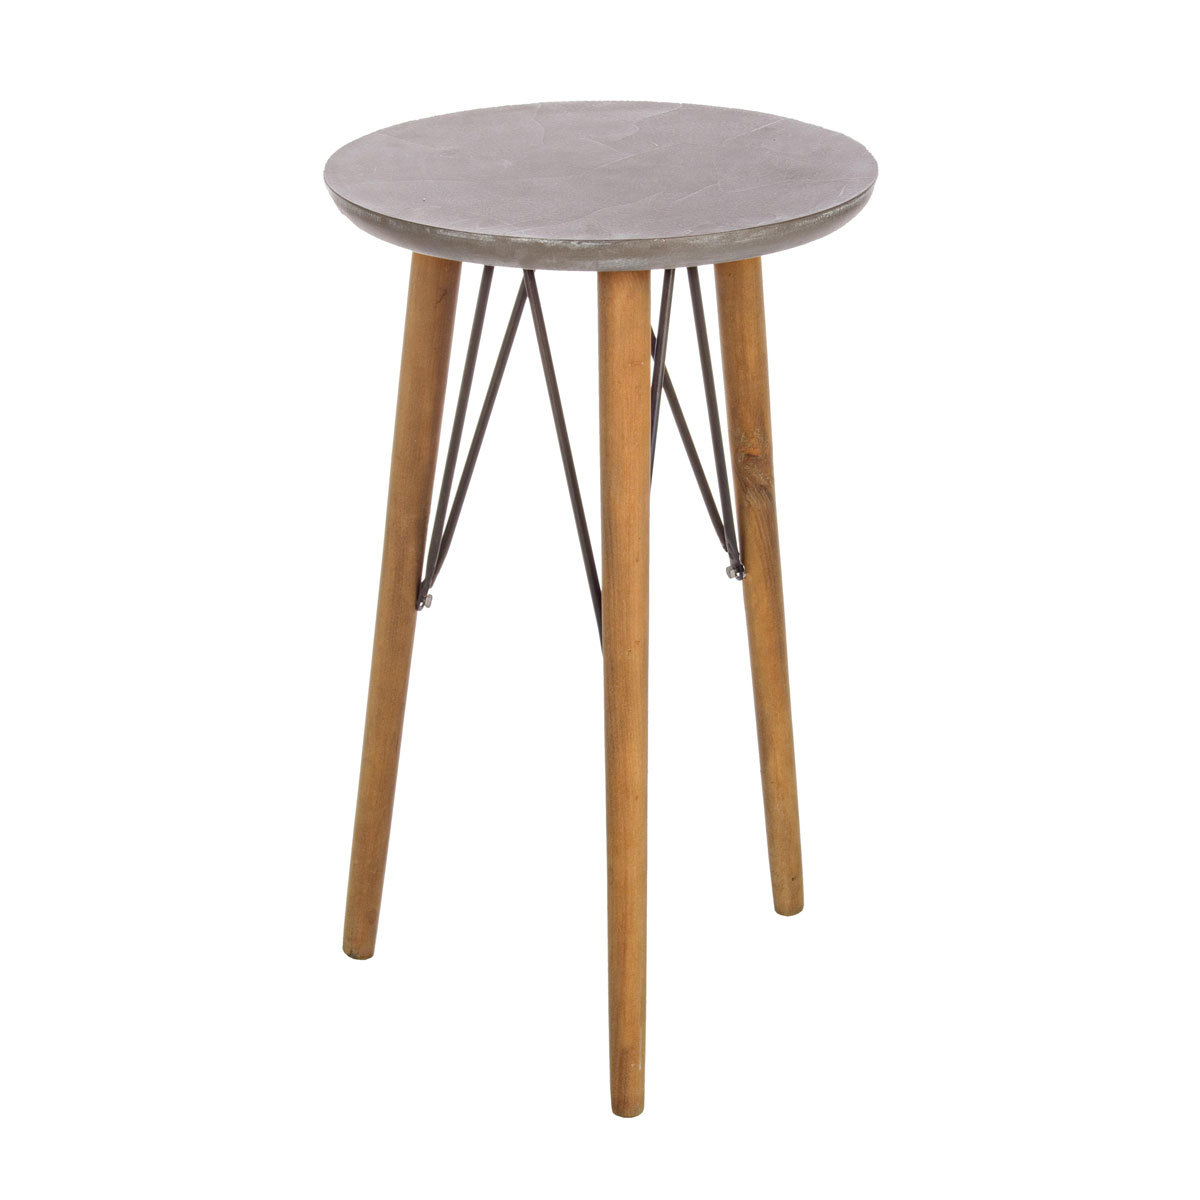 Photos 1: Bizzotto Round wooden table d. 40 h. 66 0740244